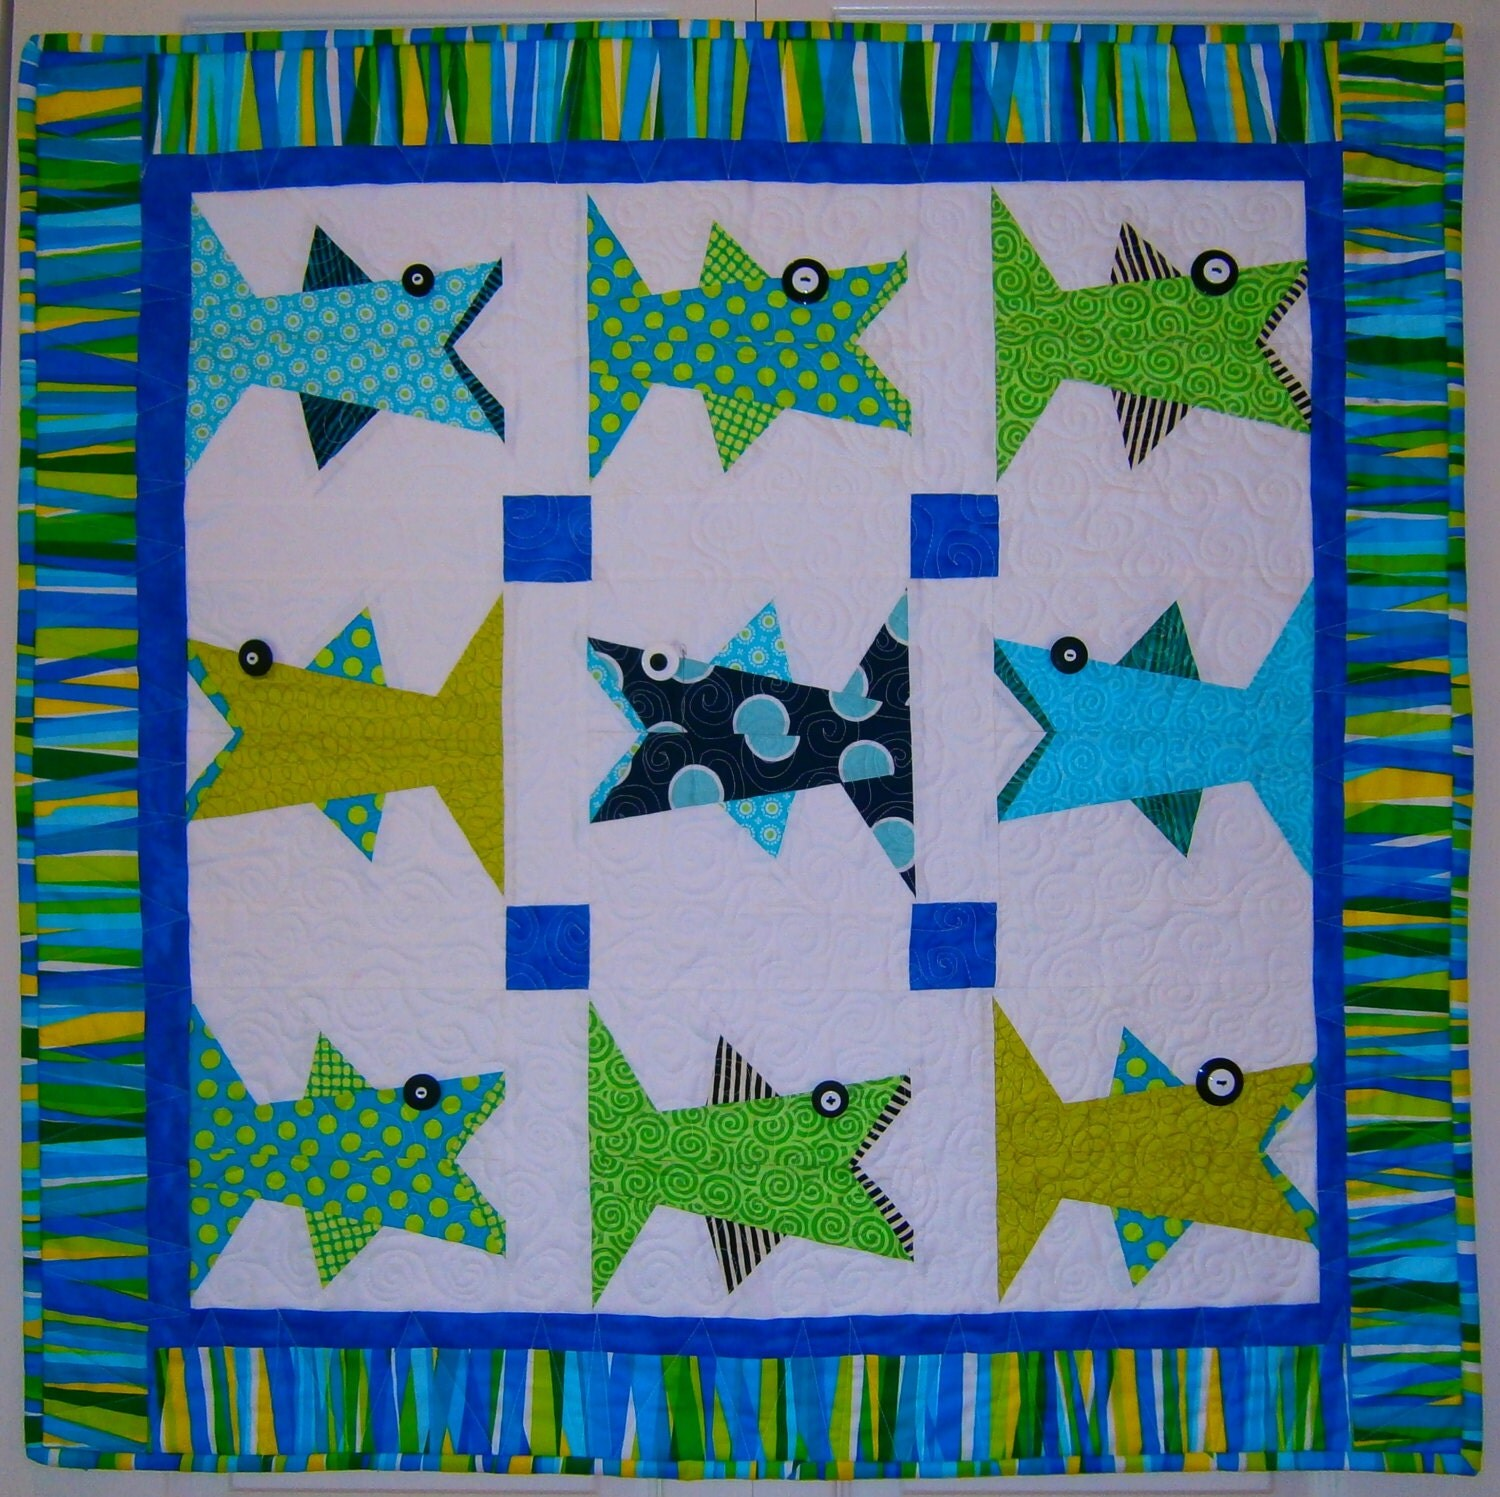 One Fish Paper Pieced Quilt Pattern in PDF from madebymarney on Etsy Studio